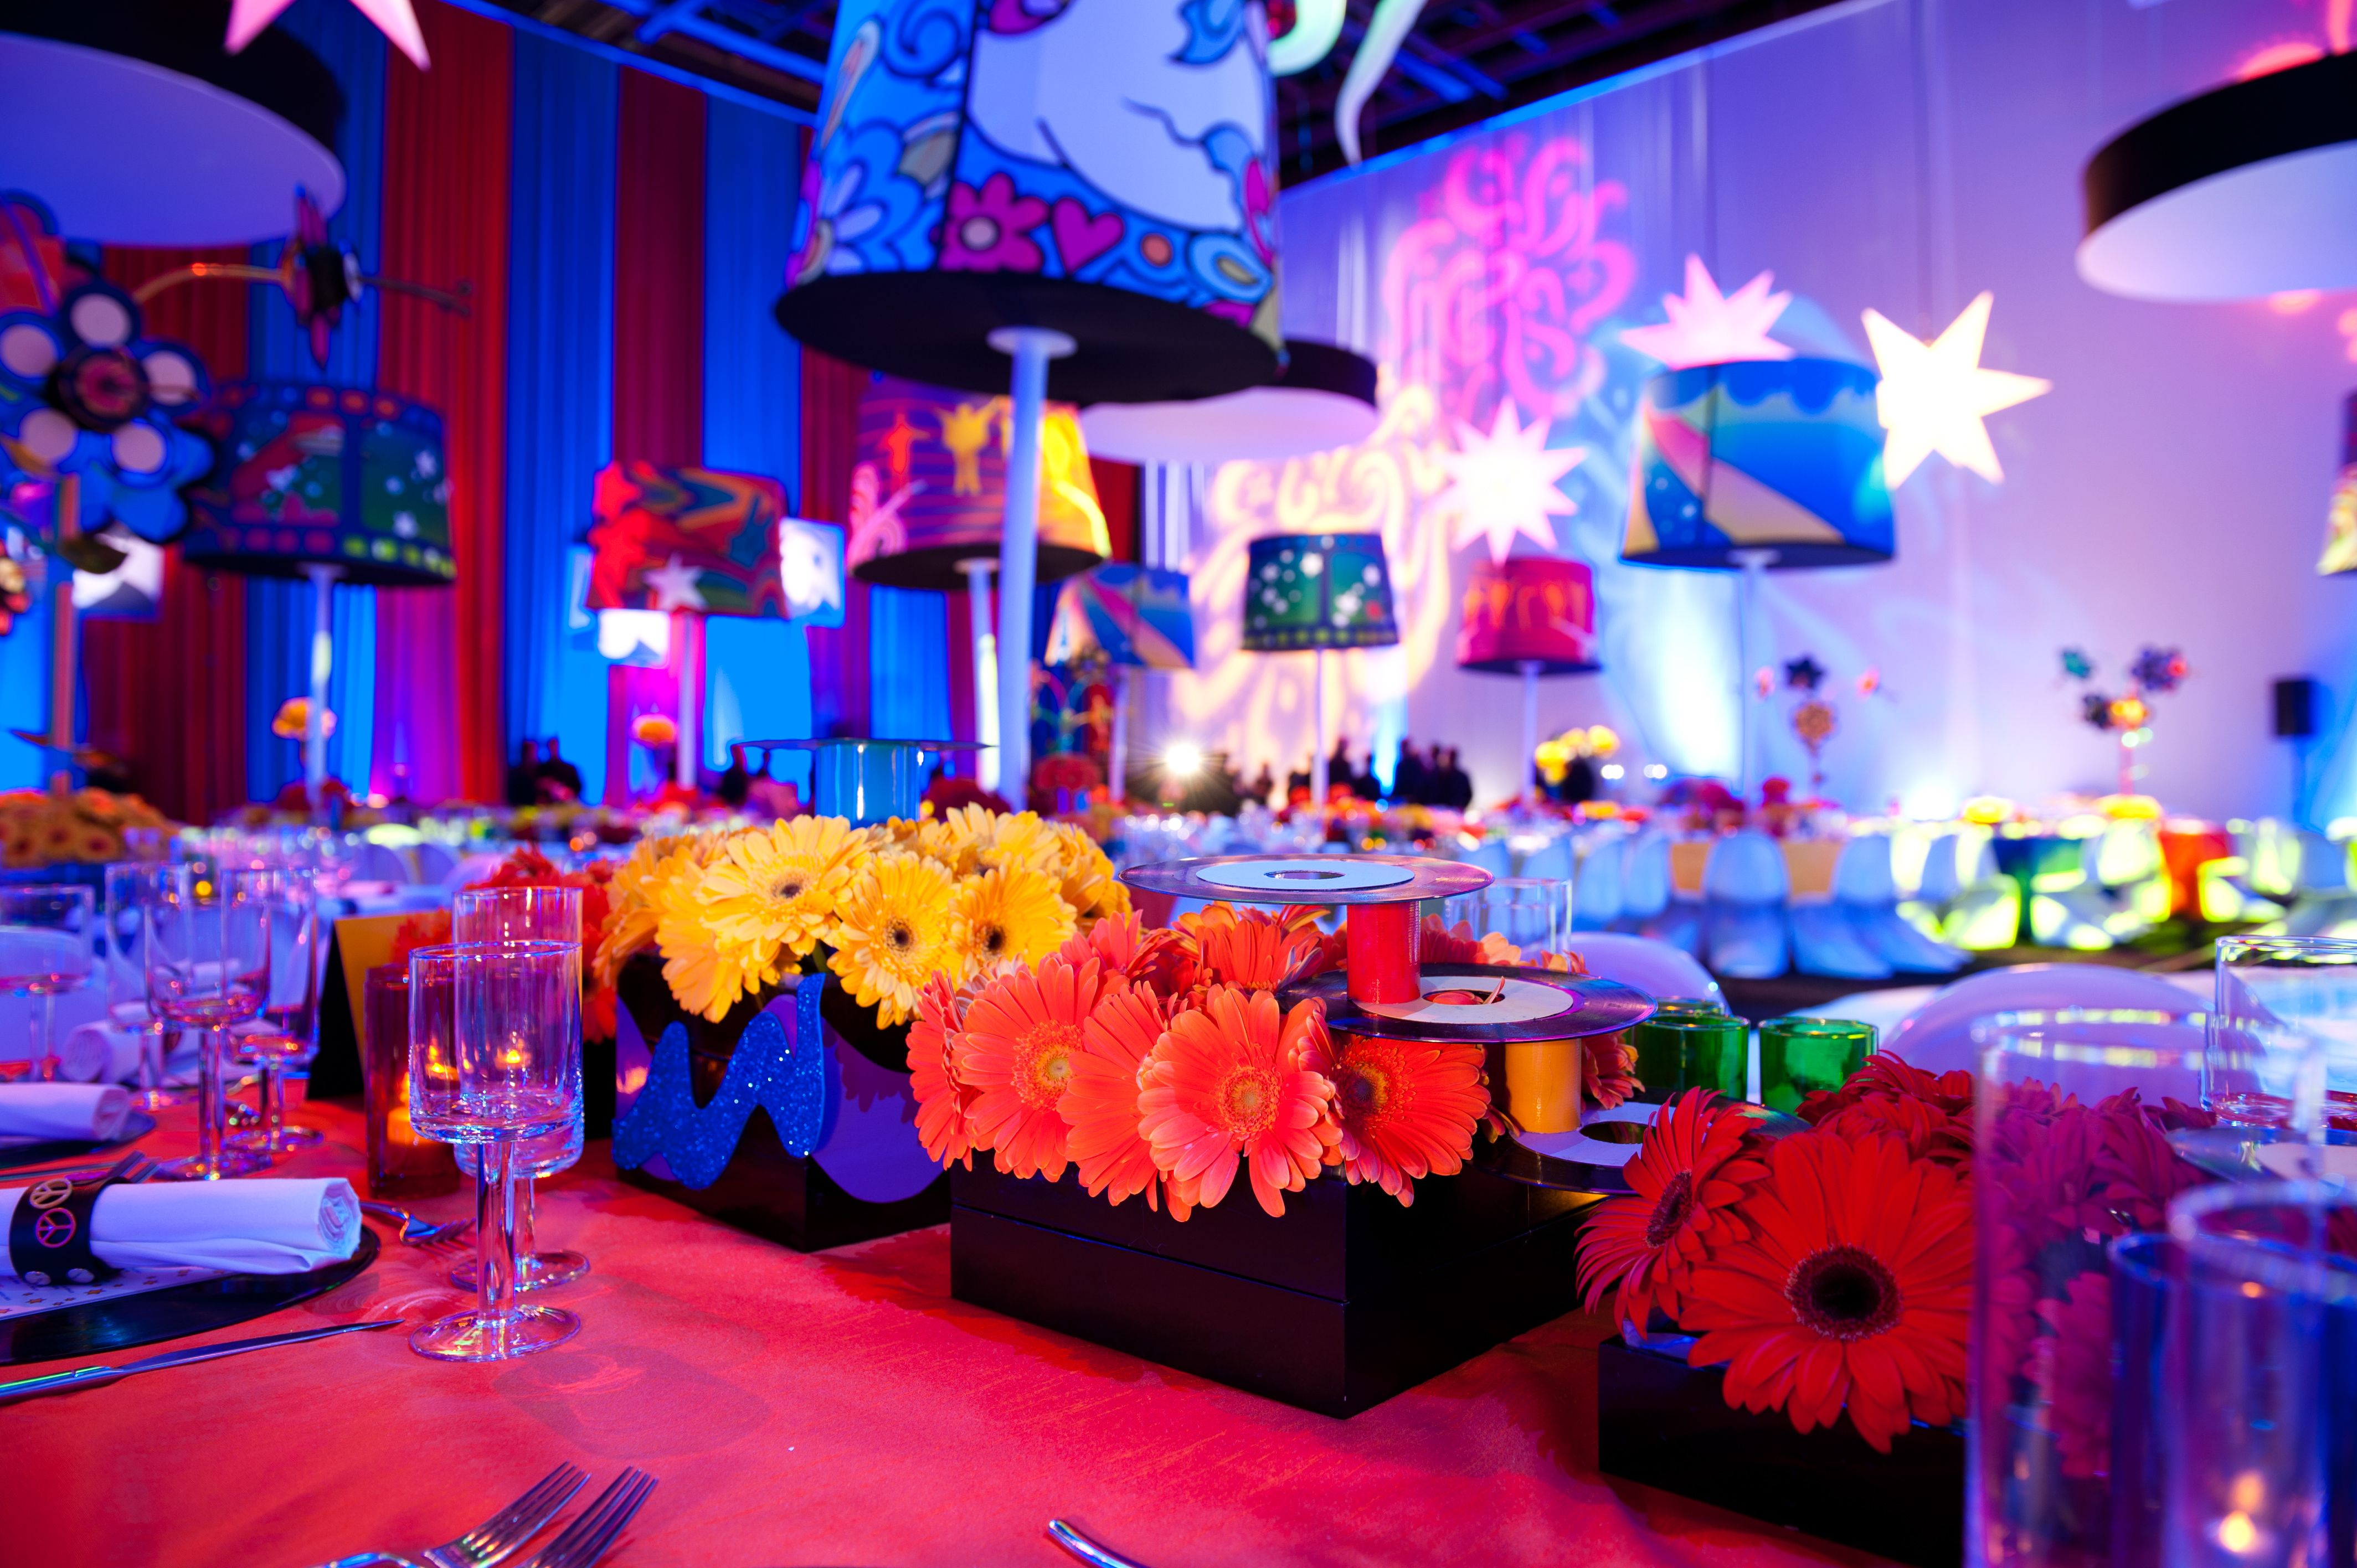 Bar mitzvah decor south florida mitzvah production by 84 west events - Sony Studios Culver City Ca Bar Mitzvah Inspiration Mindy Weiss Party Planning